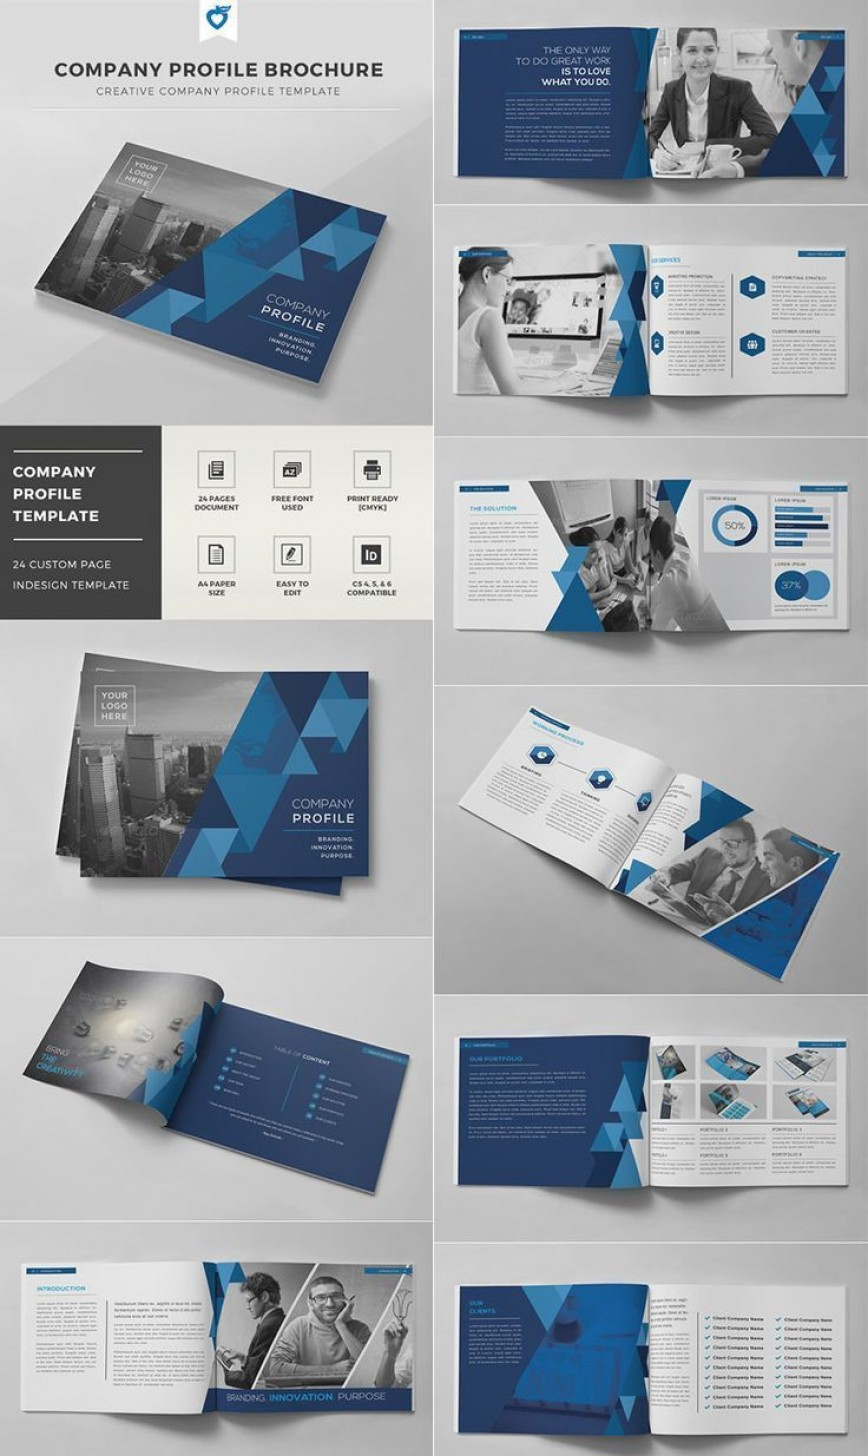 003 Astounding Busines Brochure Design Template Free Download Inspiration 868